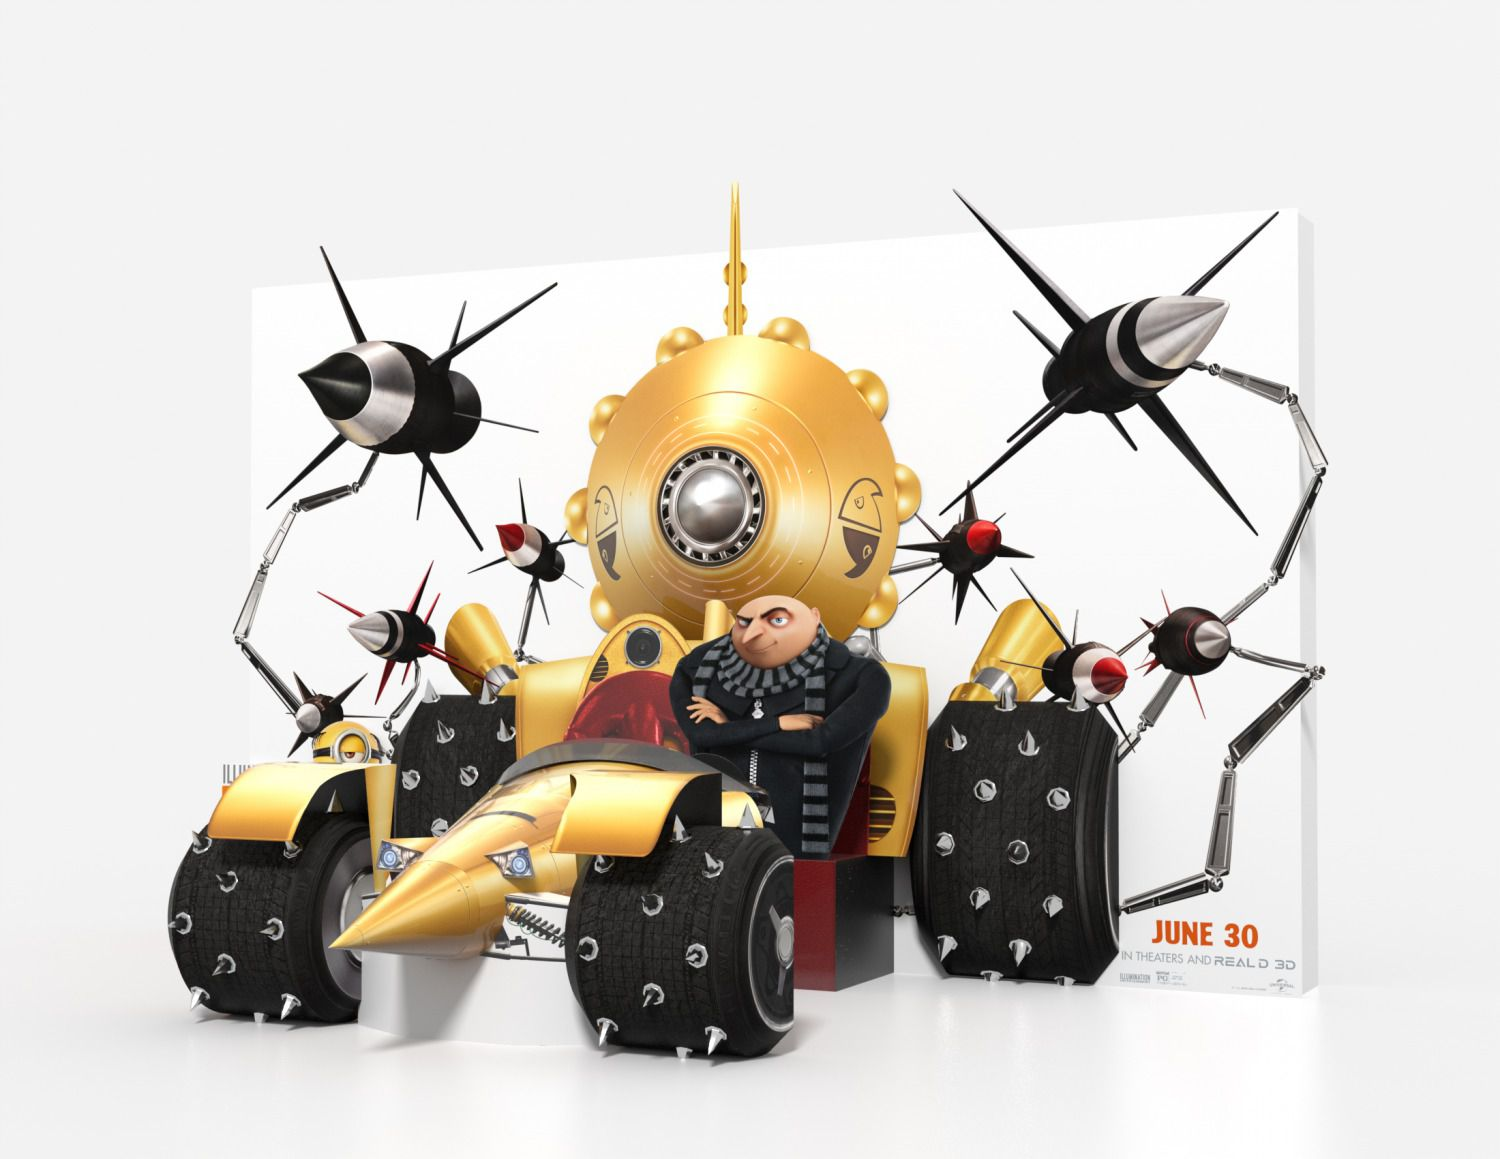 Cattivissimo me 3 - Despicable me 3 - yellow gold car